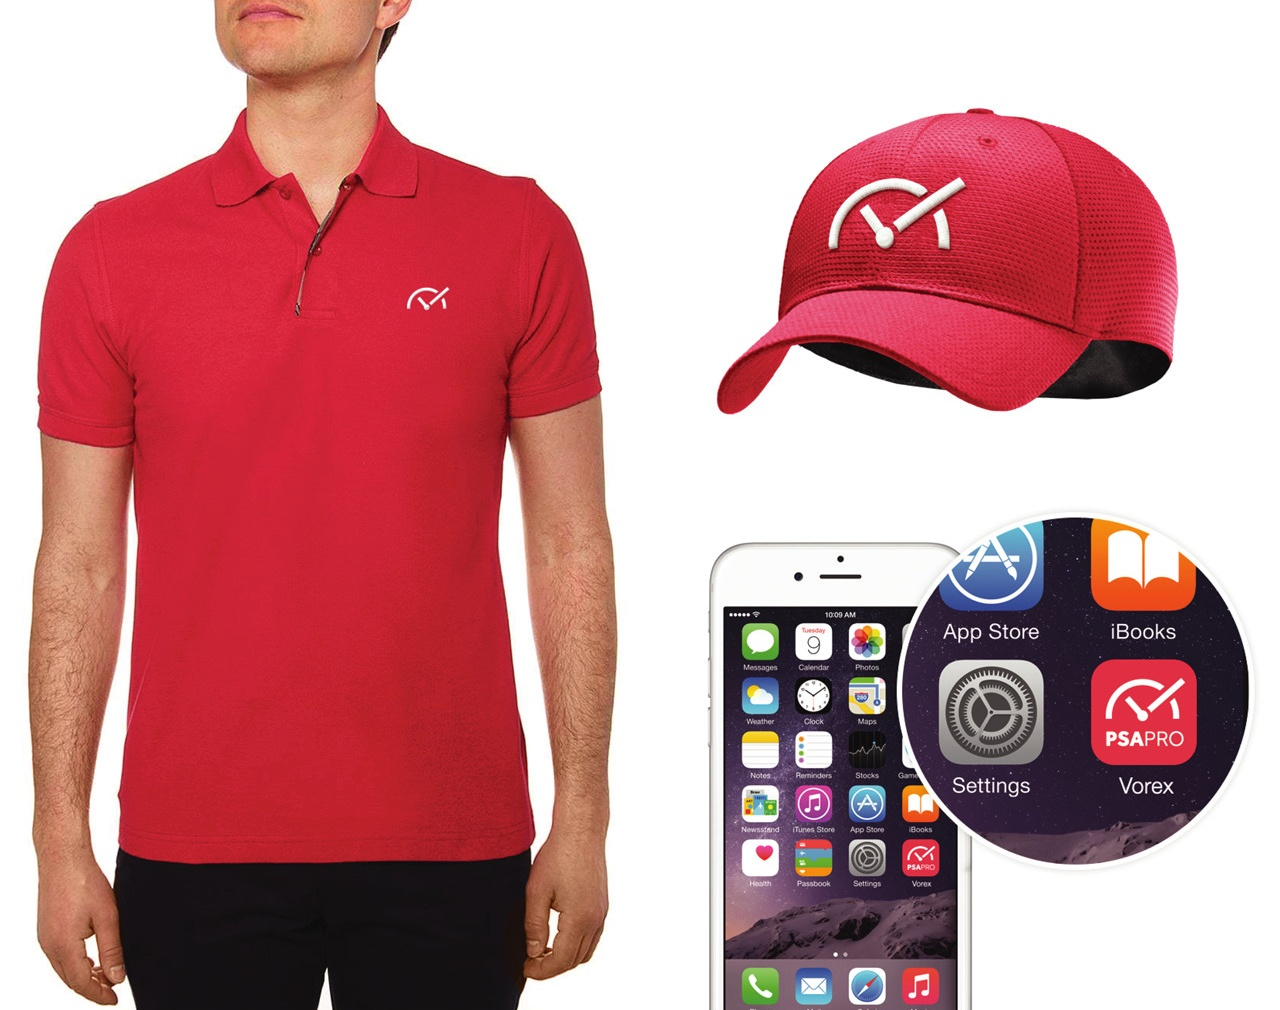 Vorex Cap and Polo Designs by Salted Stone